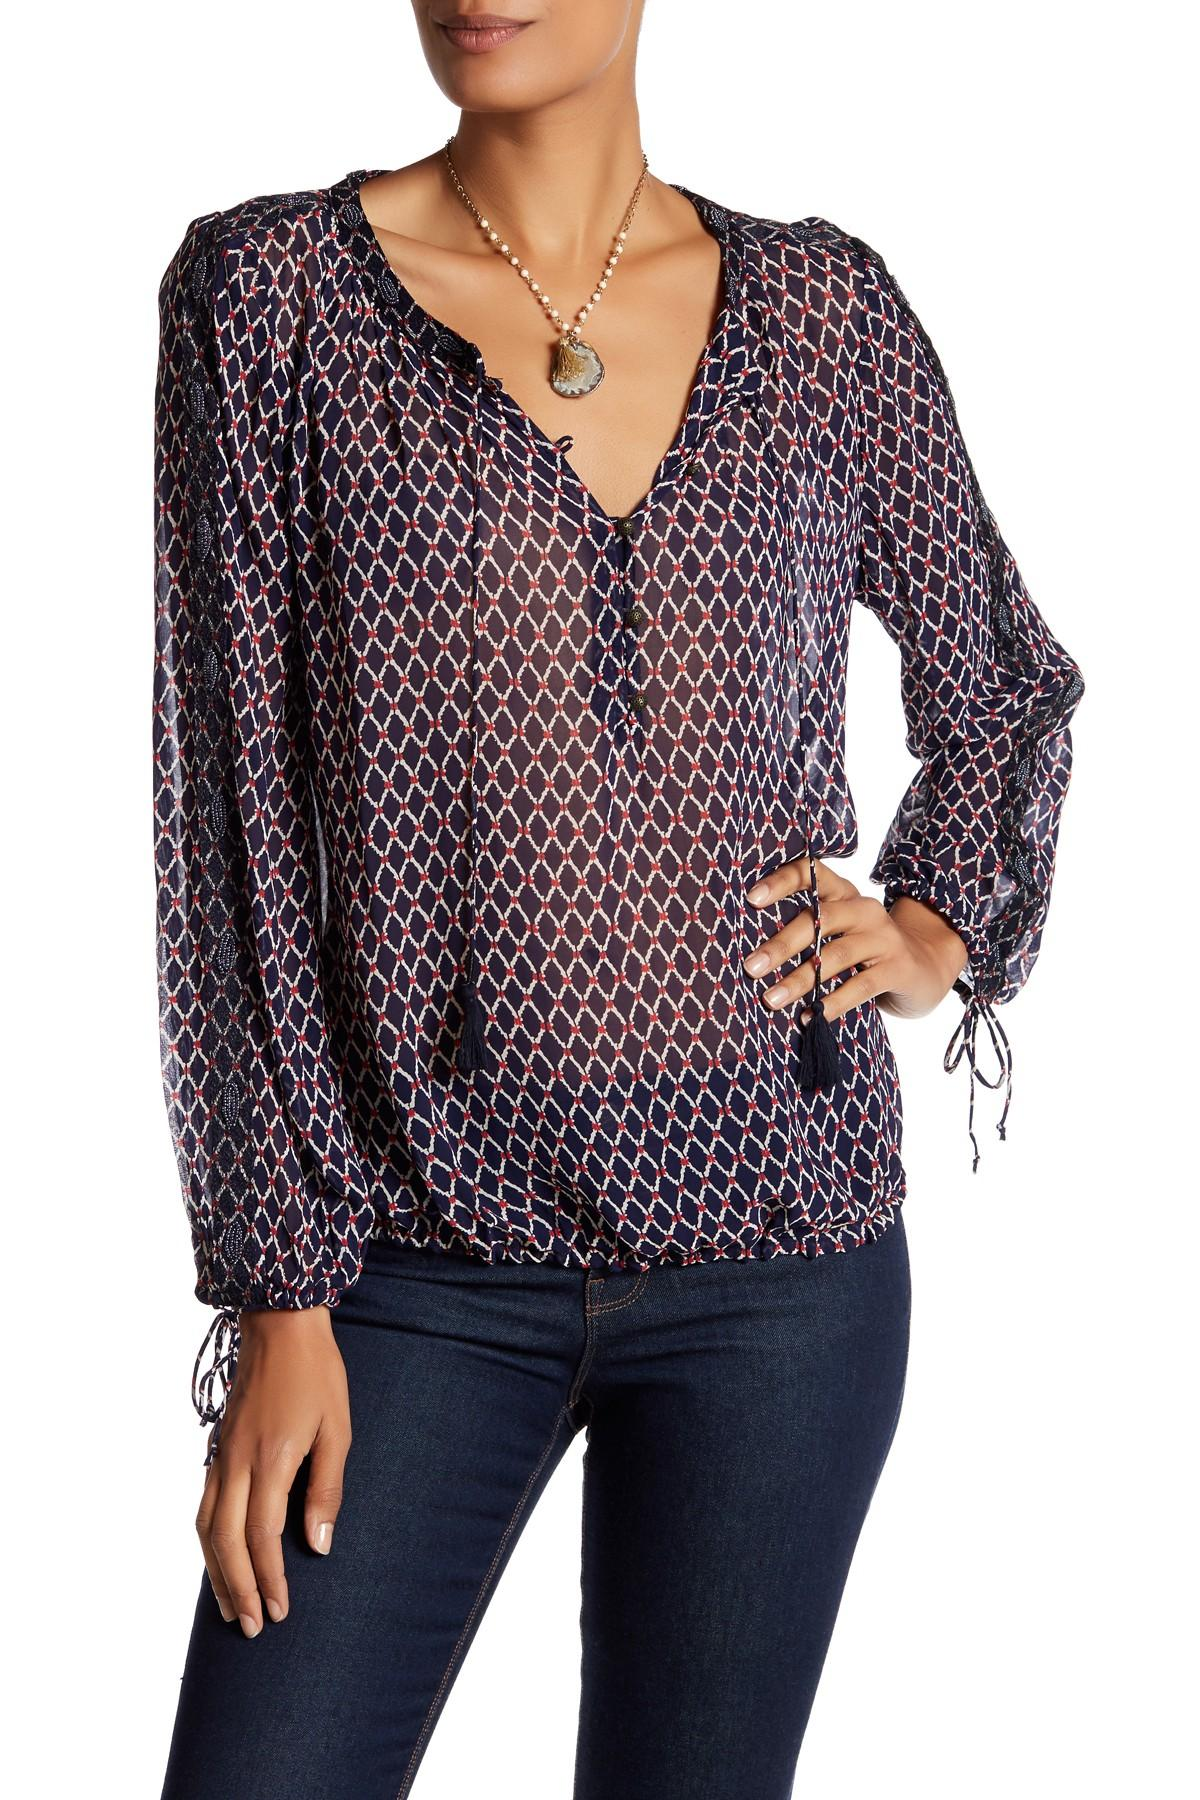 Navy Blue Blouses Tops